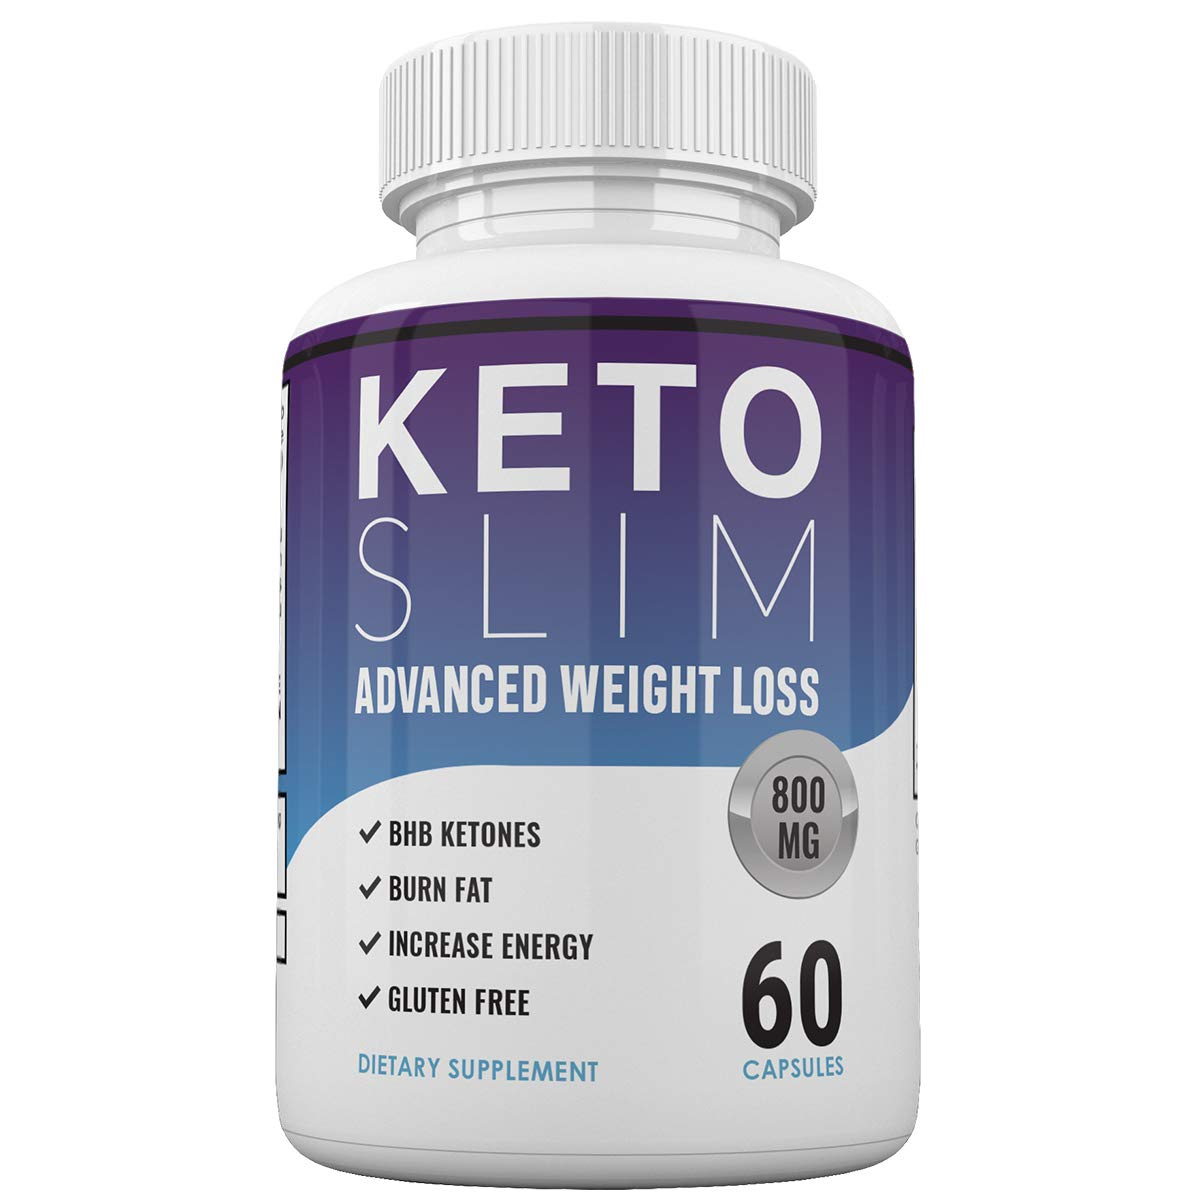 Keto Slim Advanced Weight Loss - Burn Fat Fast for Energy Hack - Beta BHB - Gluten Free - 30 Day Supply - 60 Capsules